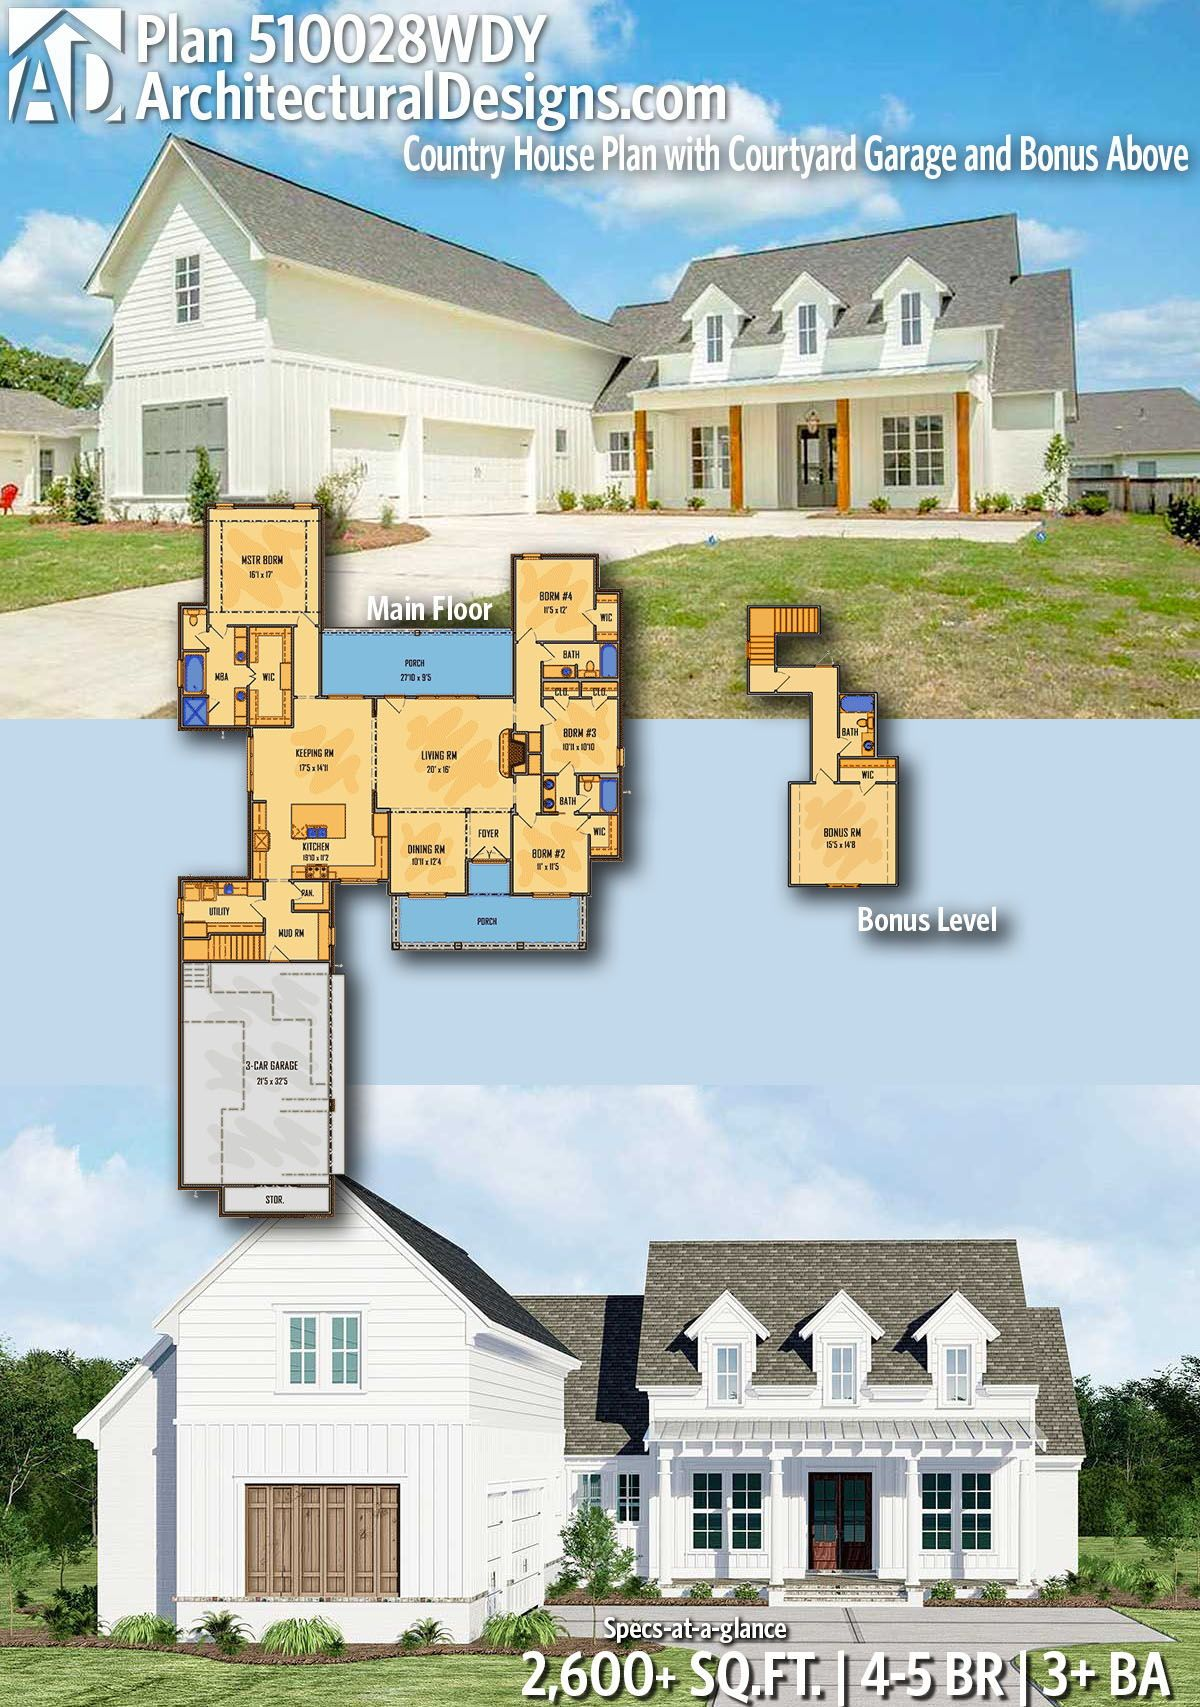 Plan 510028wdy Country House Plan With Courtyard Garage And Bonus Above Multigenerational House Plans Courtyard House Plans Country Style House Plans